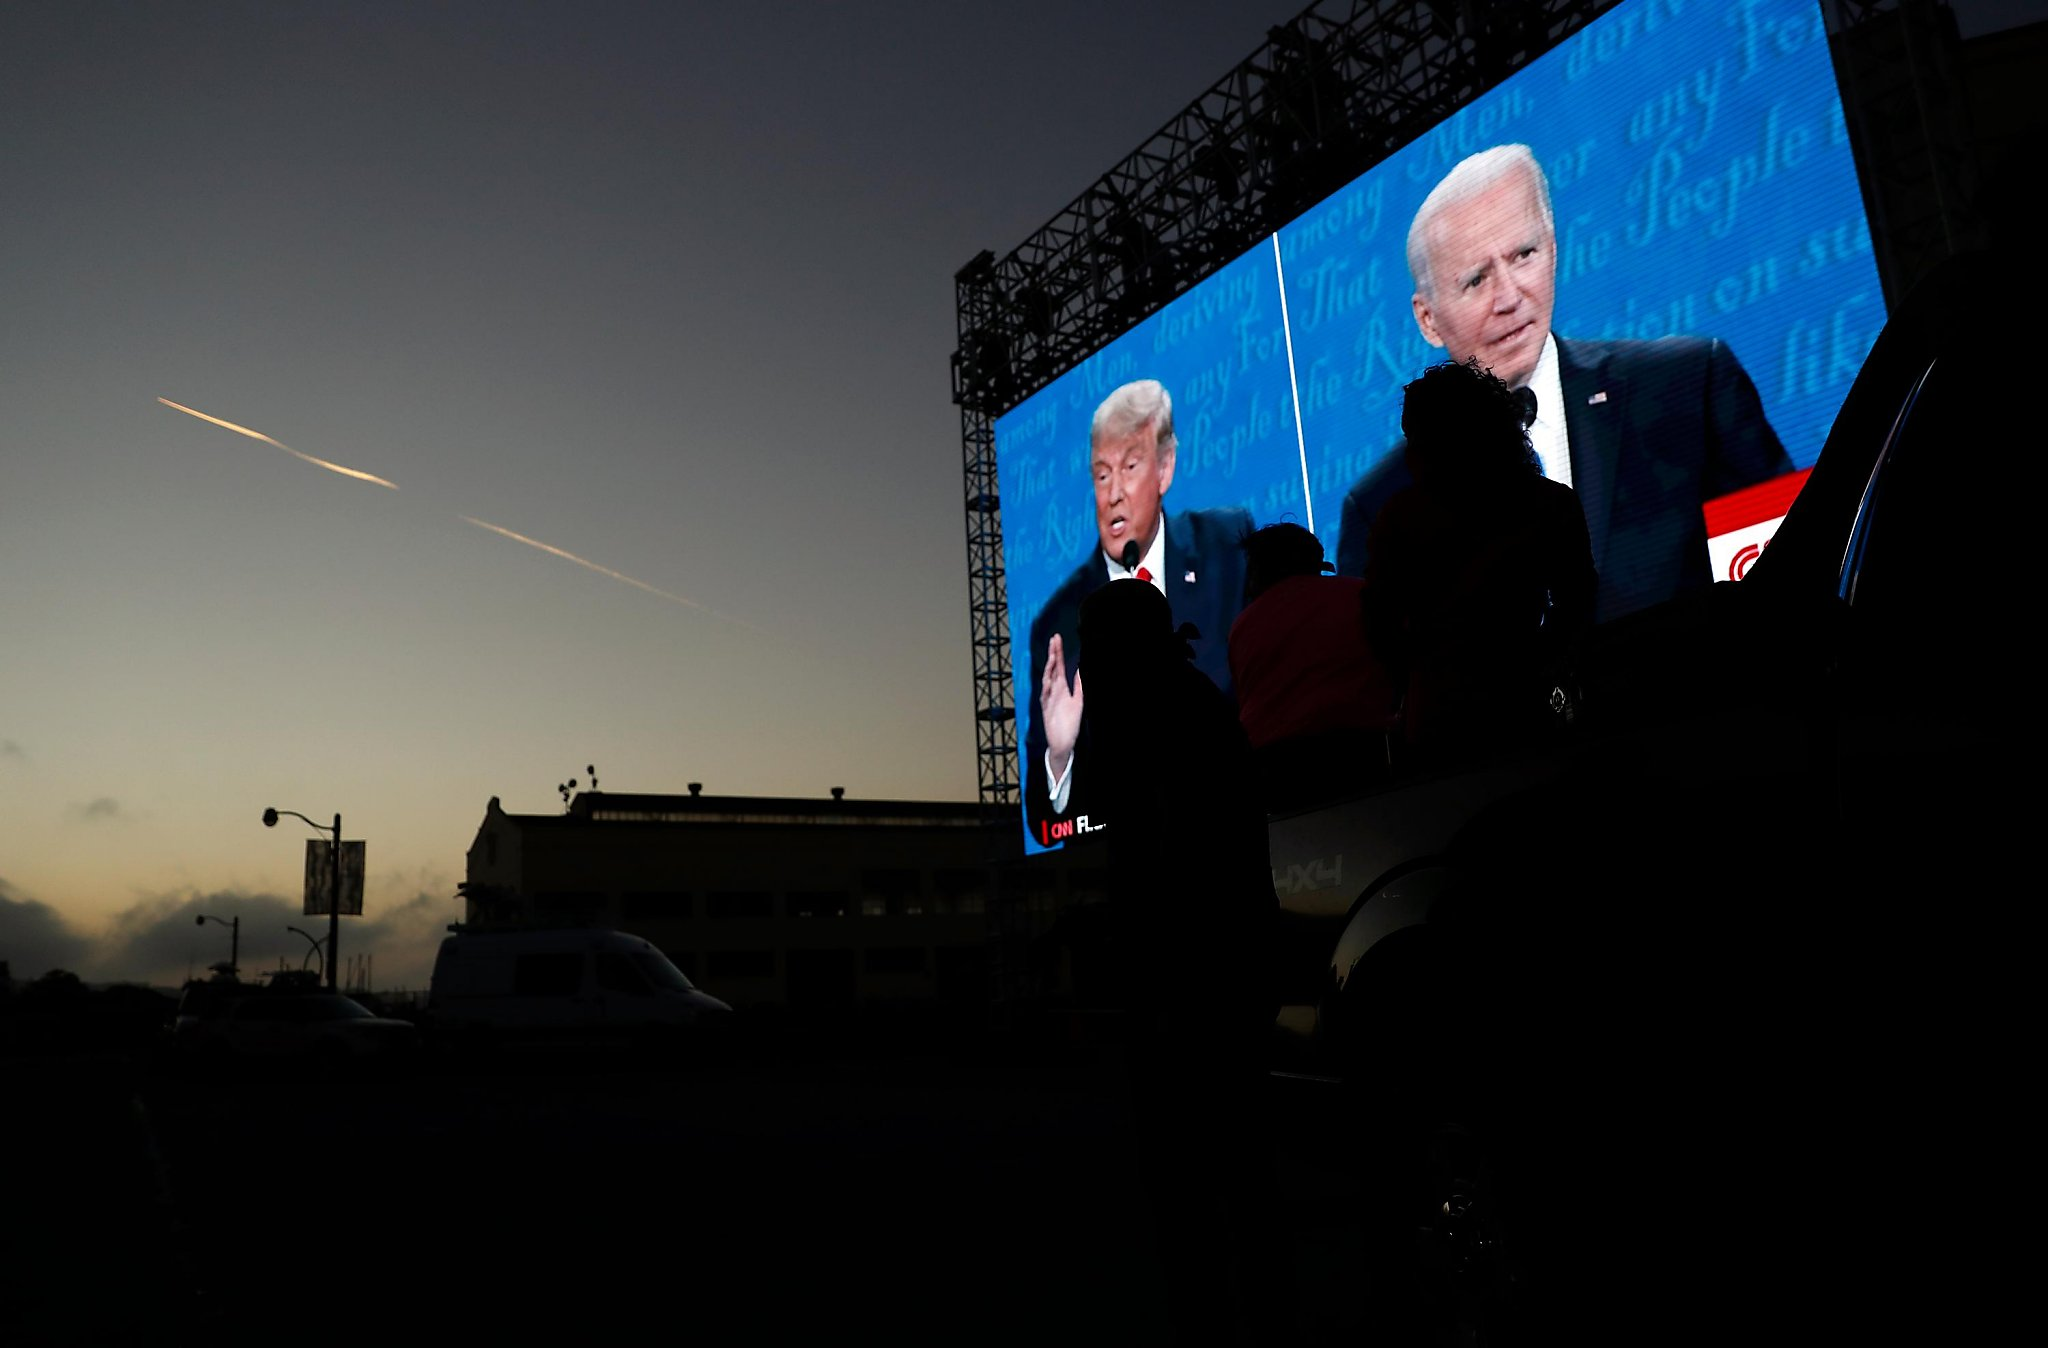 Willie Brown: I know who won the debate. But who's going to win the election?